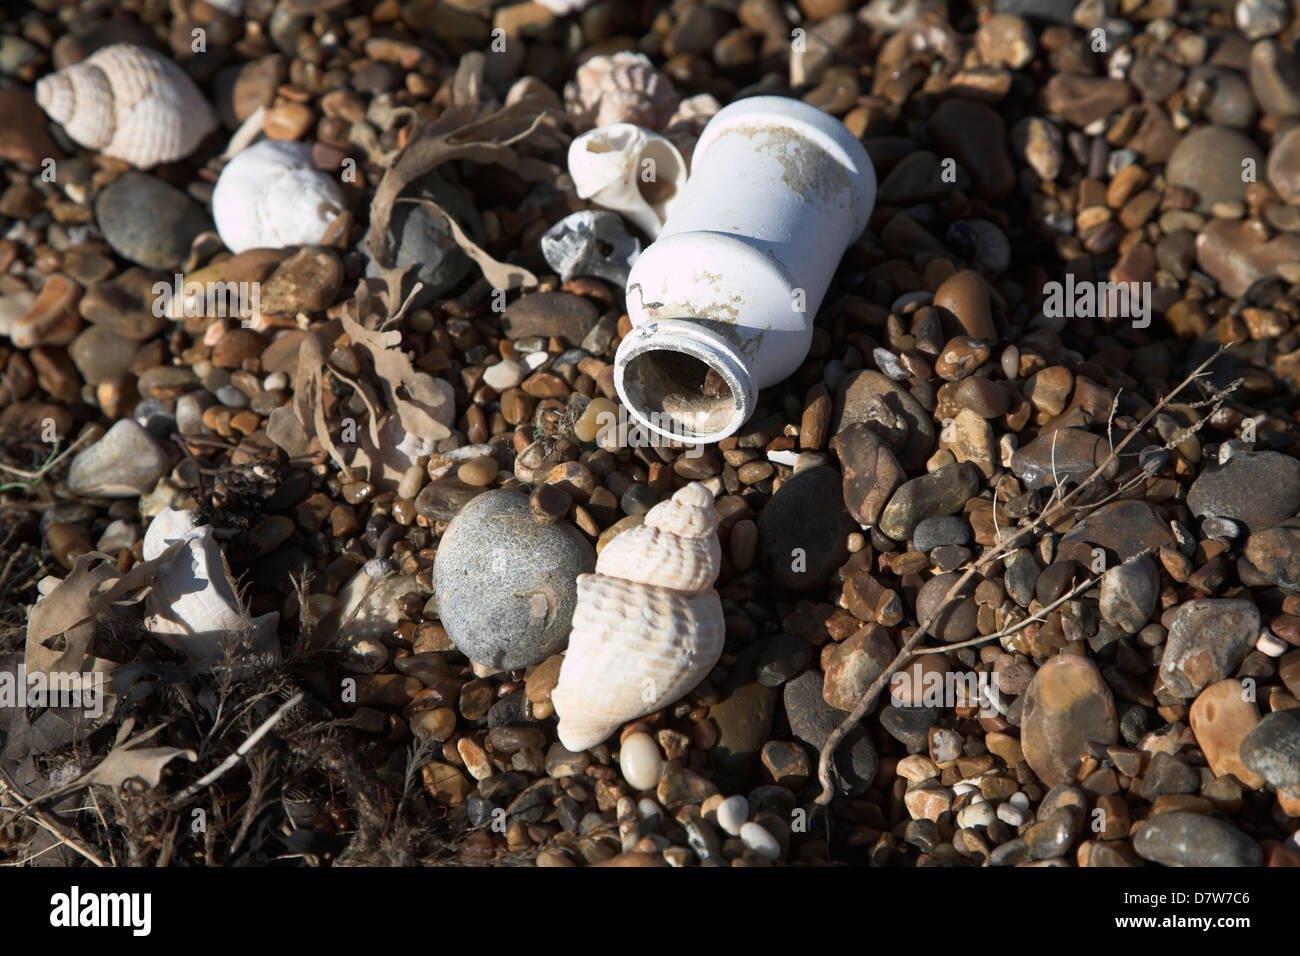 Marine pollution shown by plastic container on a beach next to shells - Stock Image